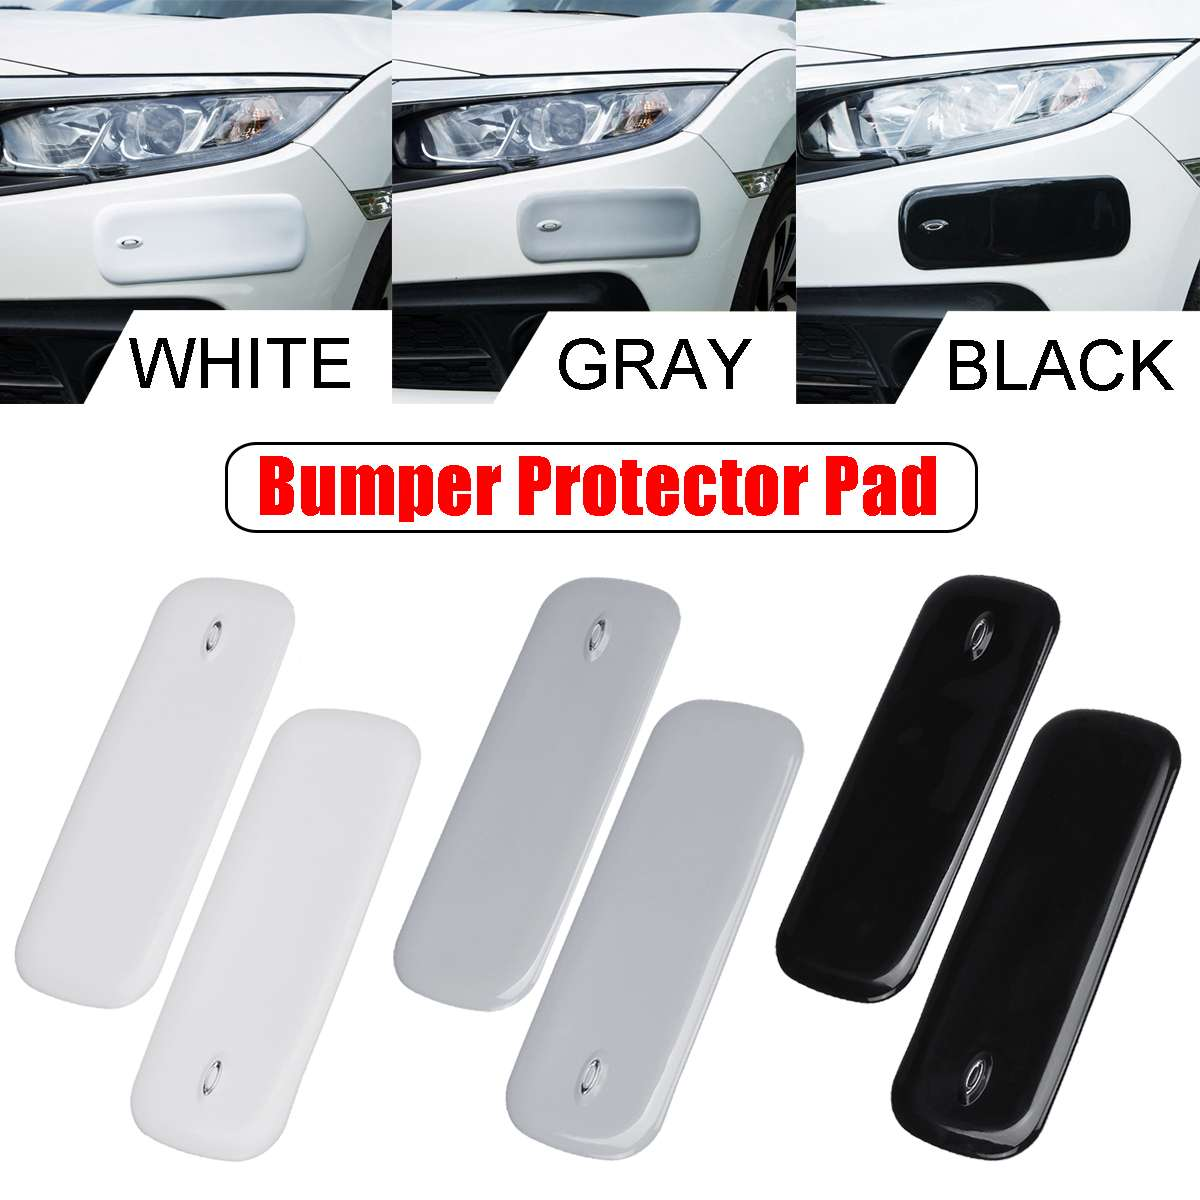 Side Car Bumper Protection Anti-Collision Patch Trim Bumper Protecor for Car Truck SUV YnGia Car Bumper Corner Protecor Guard Rubber Strips 2 Pack